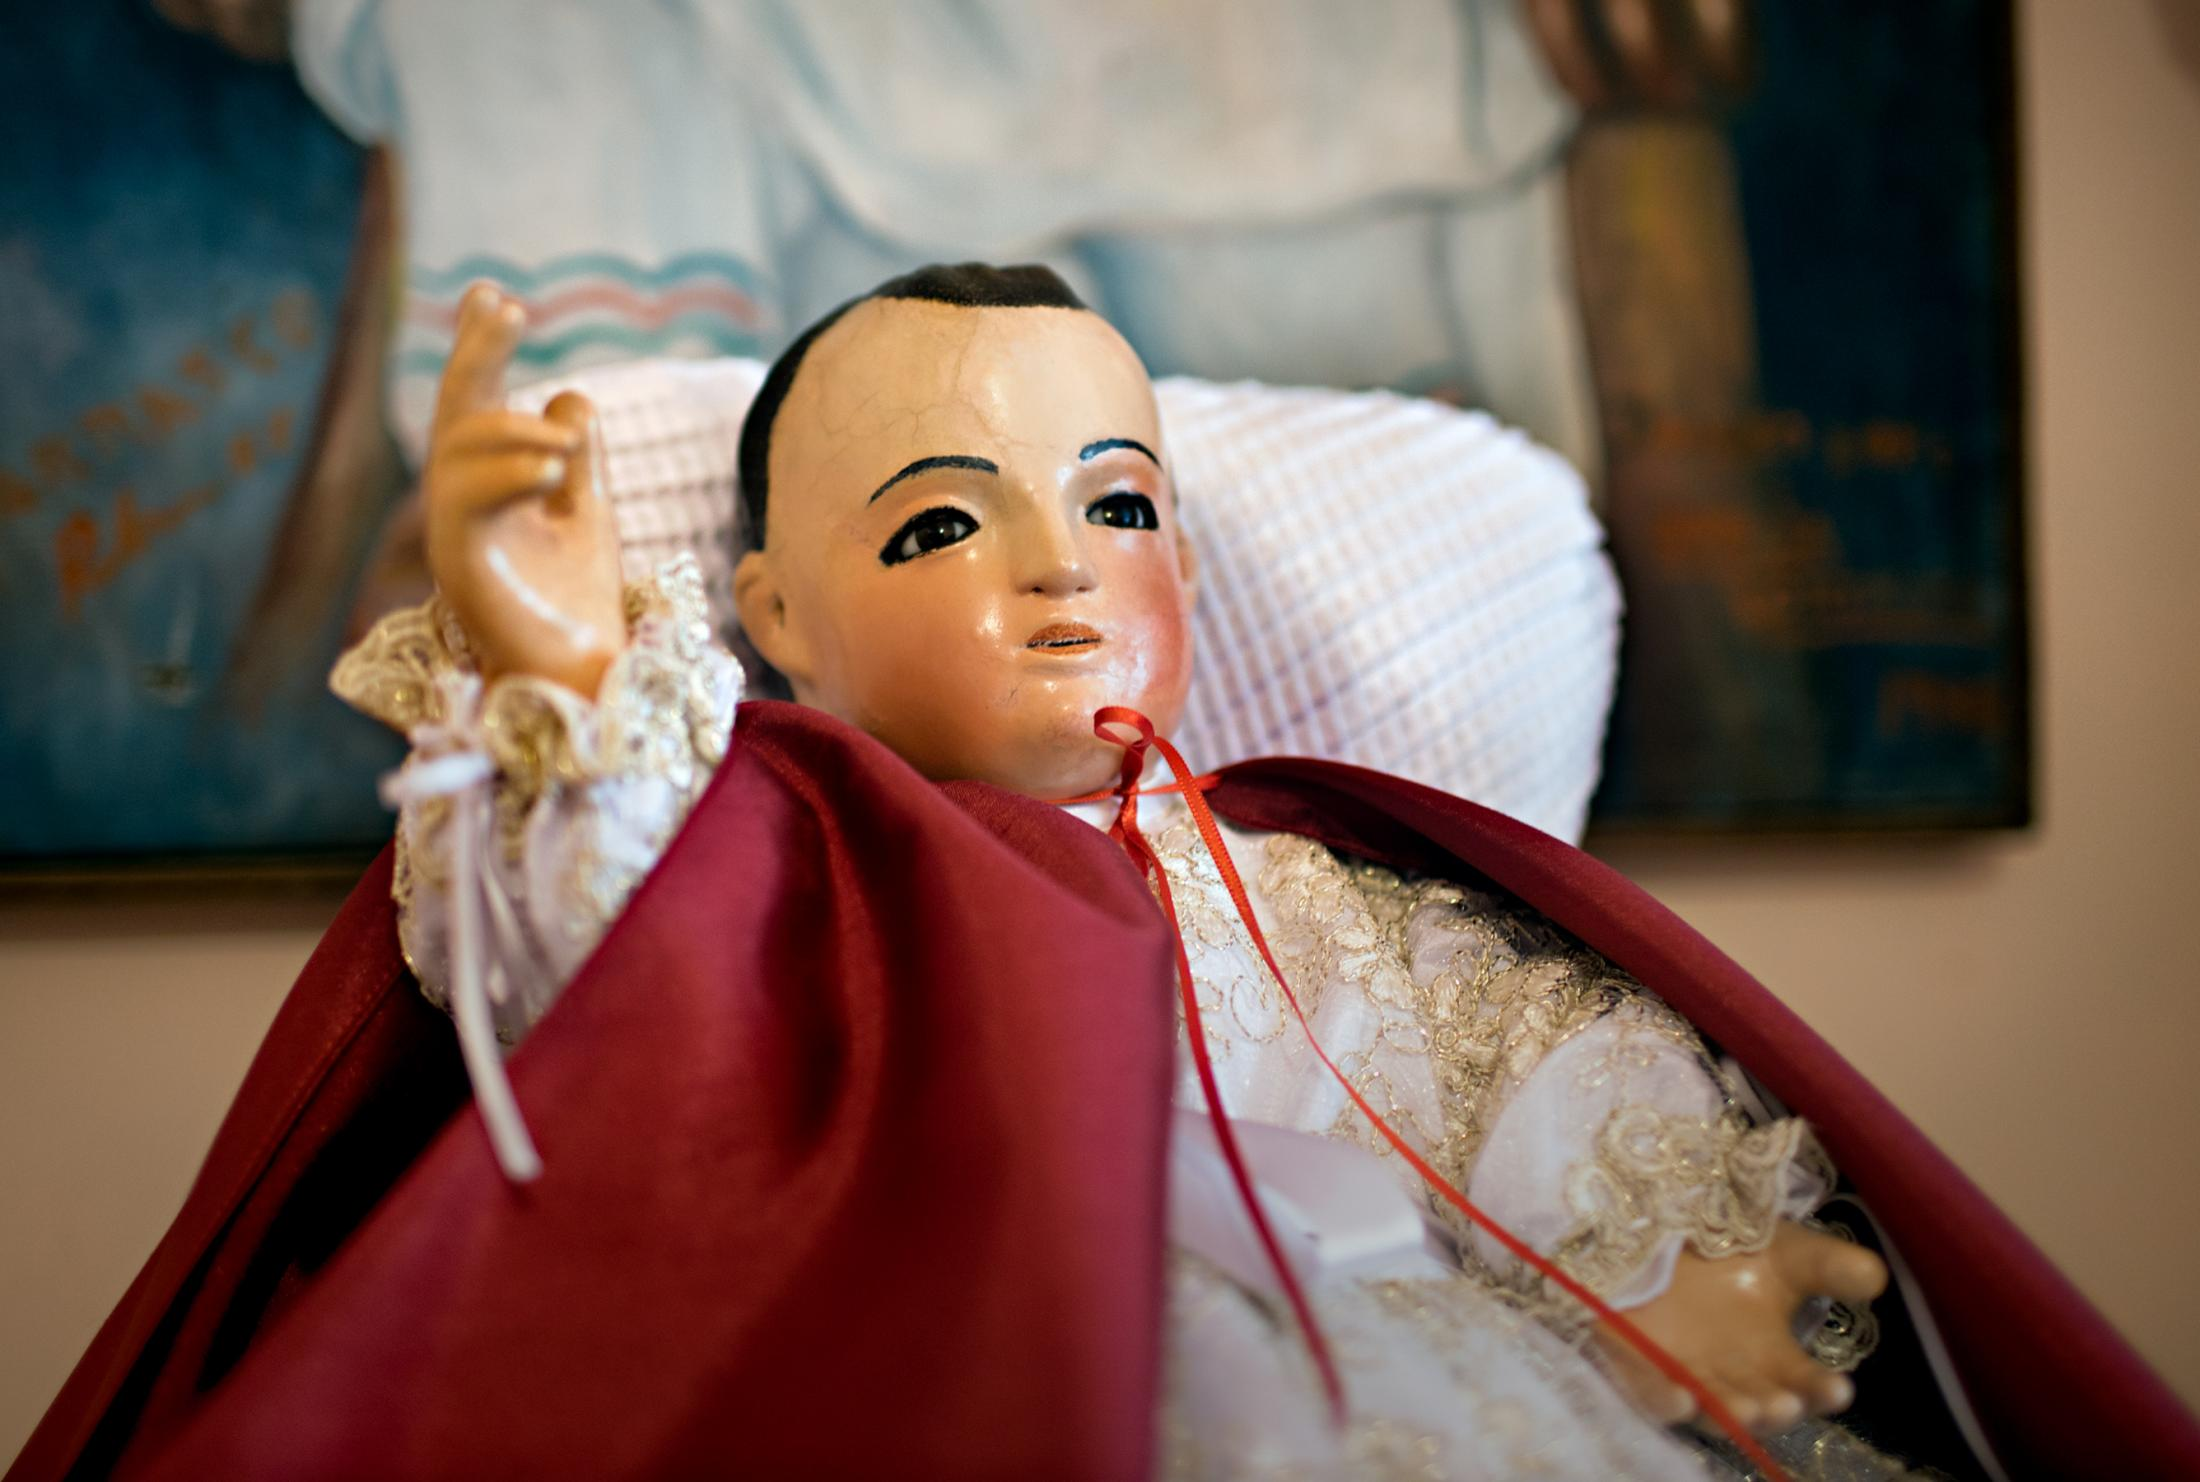 Niñopa is a 430 years old relic doll that represents the Baby Jesus. He was created in 1577 and is made out of wood from a tree called Colorín or coral tree. It is 51cm long and weights 598 grams.